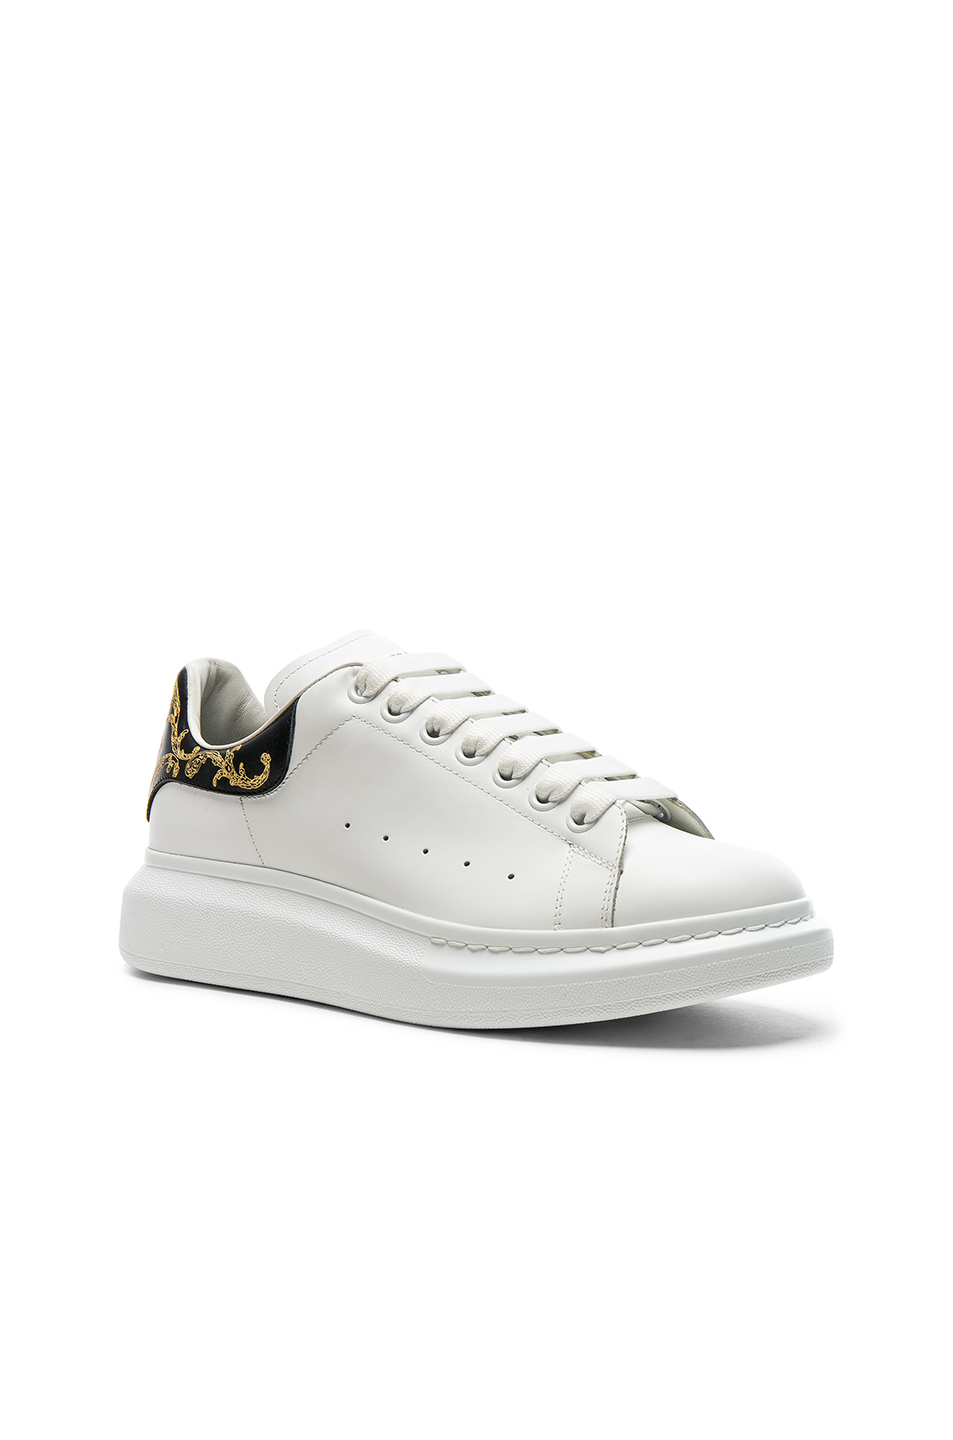 Alexander McQueen Leather Platform Sneakers in White